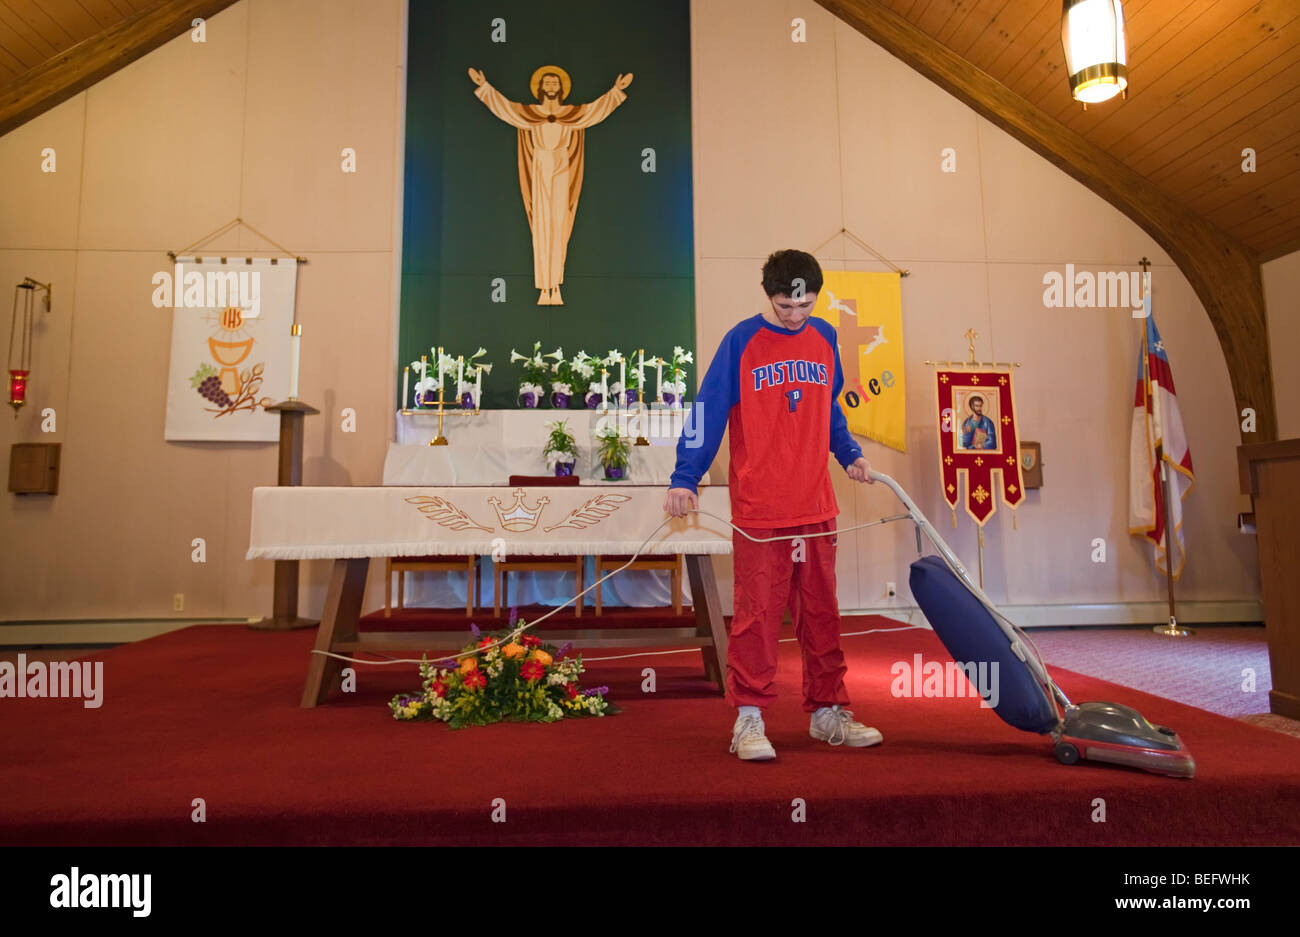 Developmentally Disabled Students Clean Church in Job Training Program - Stock Image